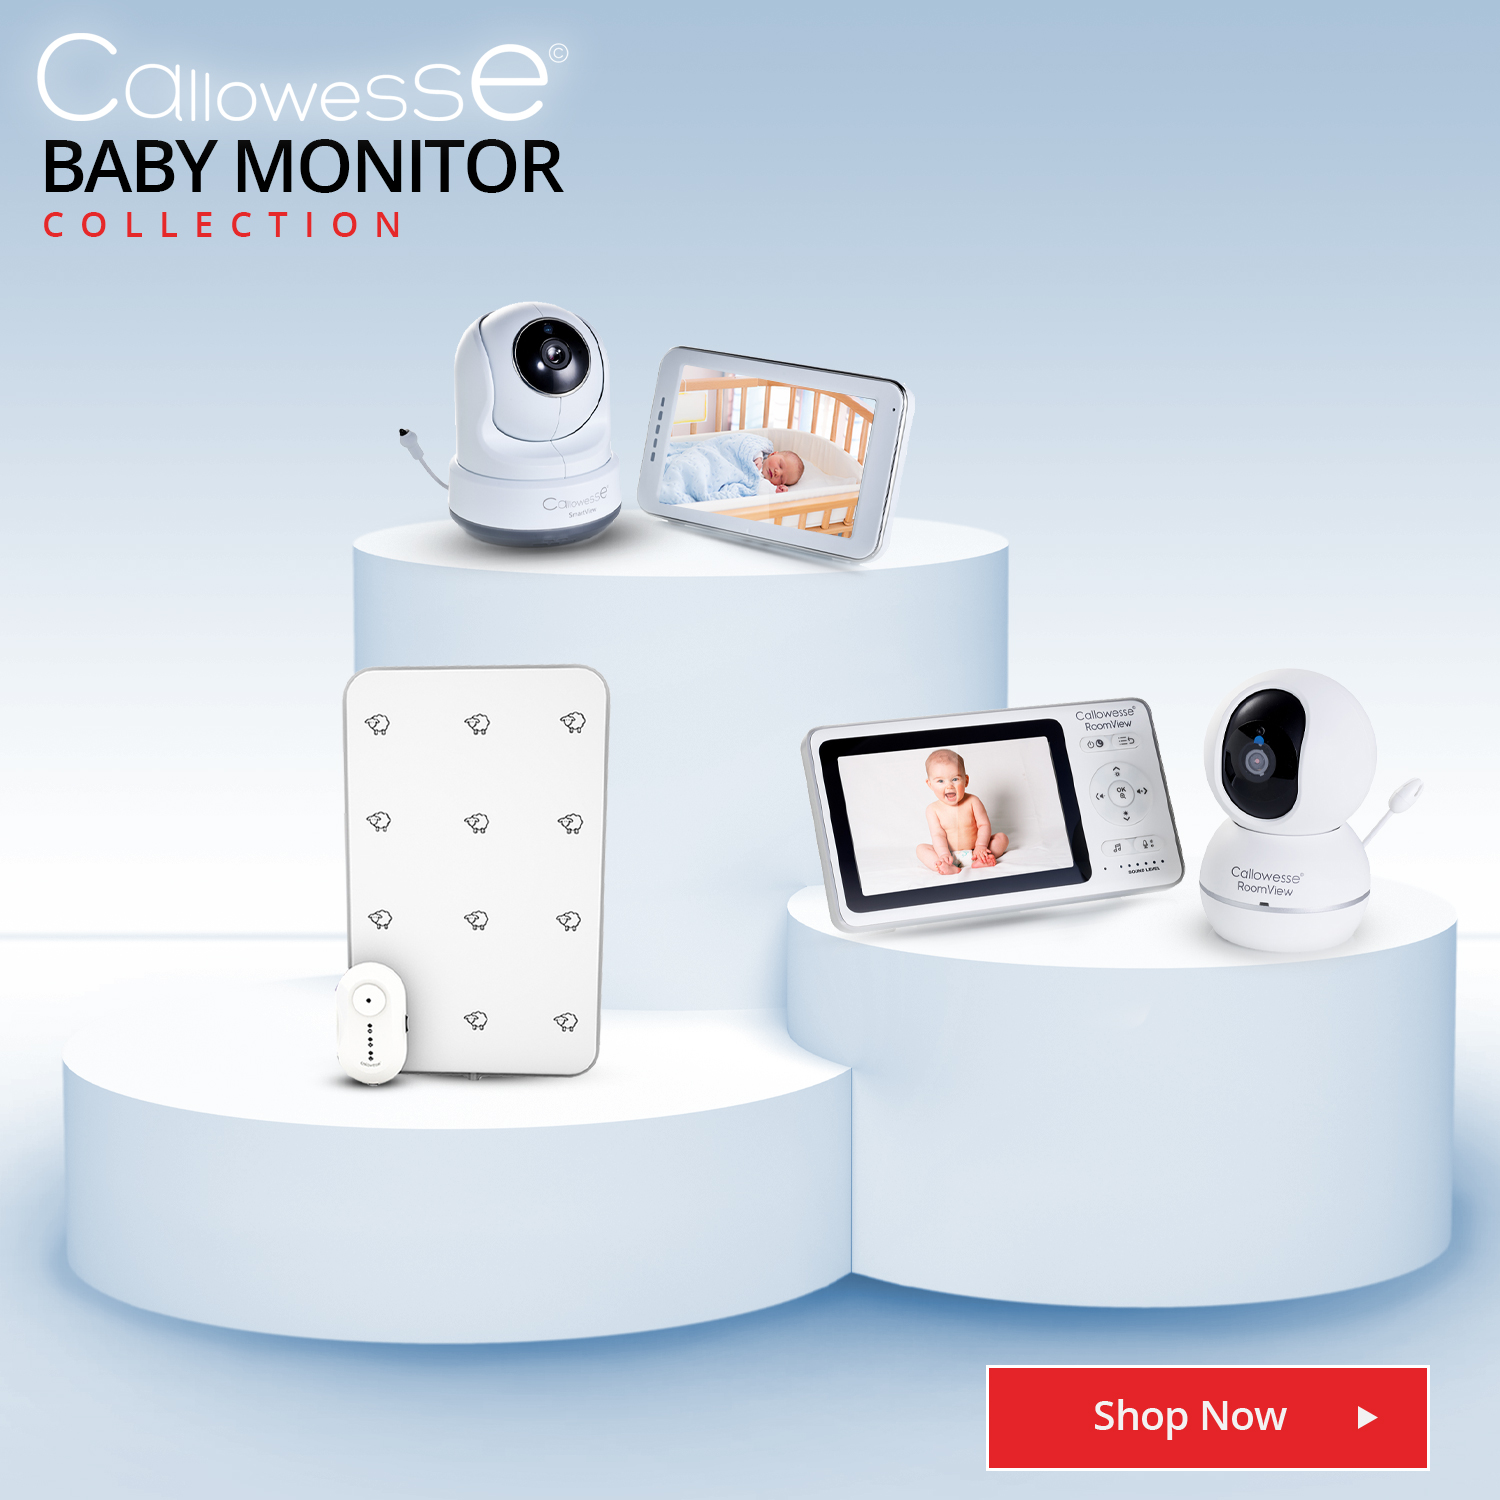 Callowesse Baby Monitor